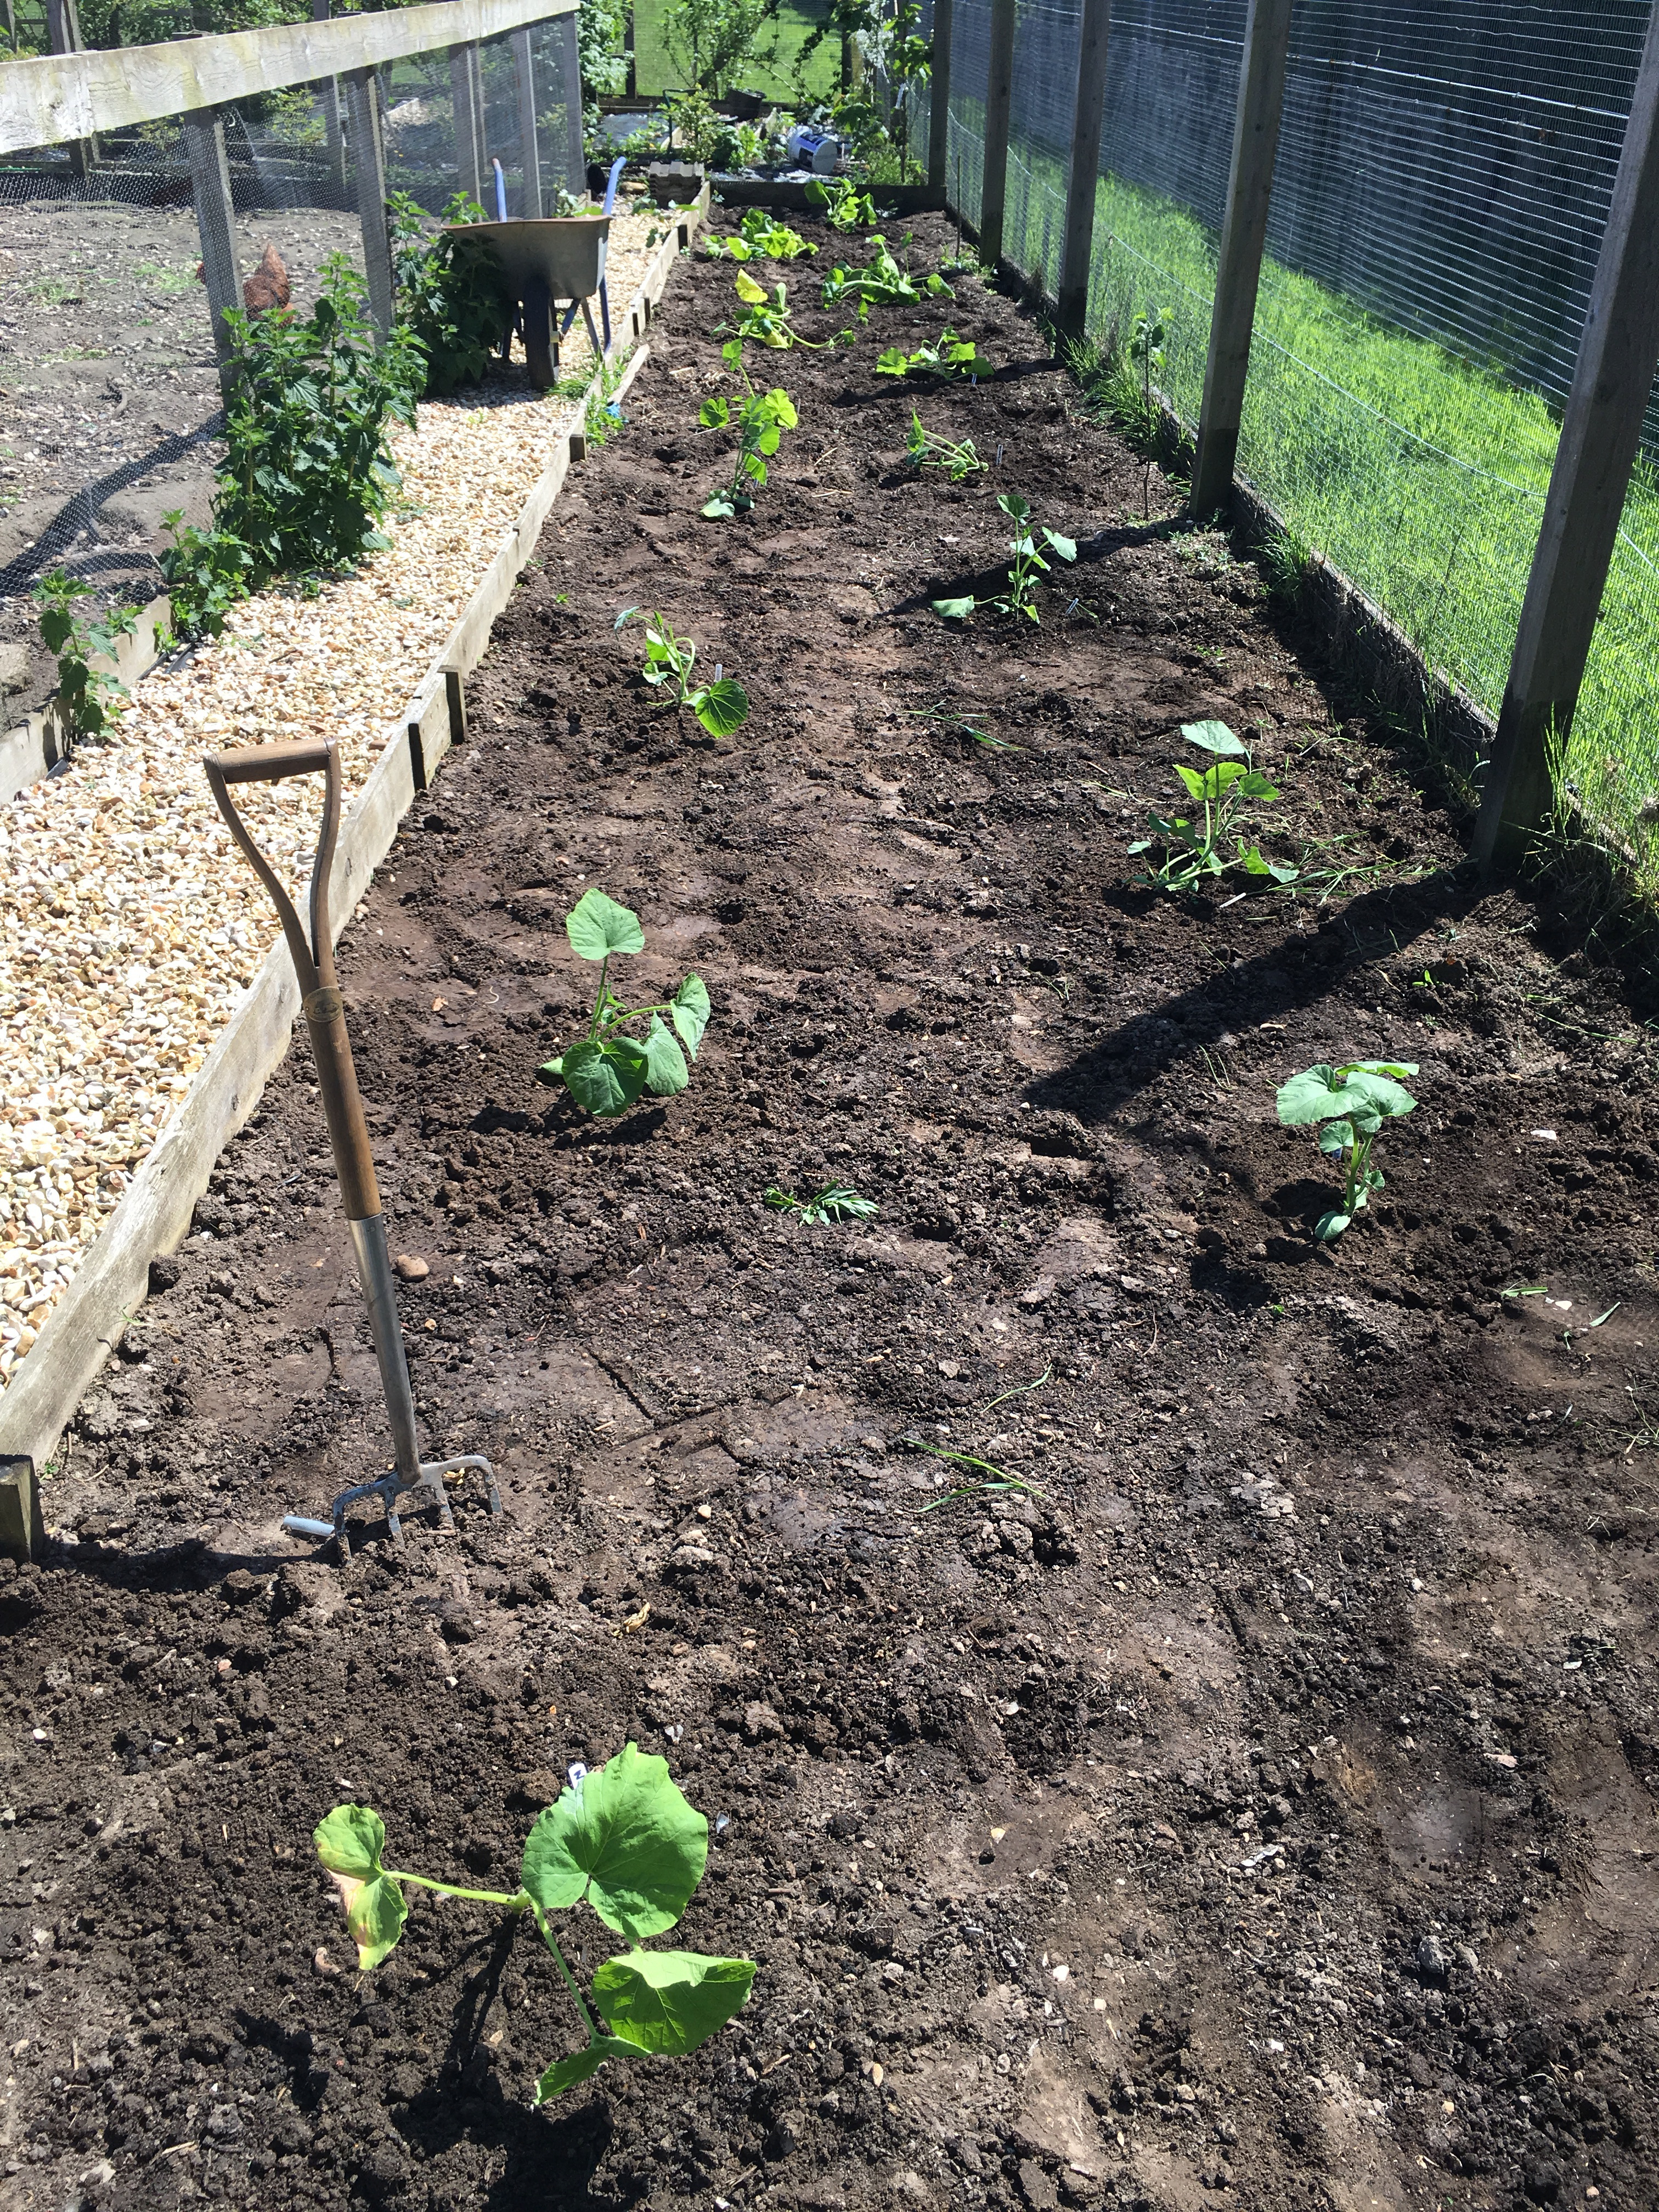 The planted squash bed